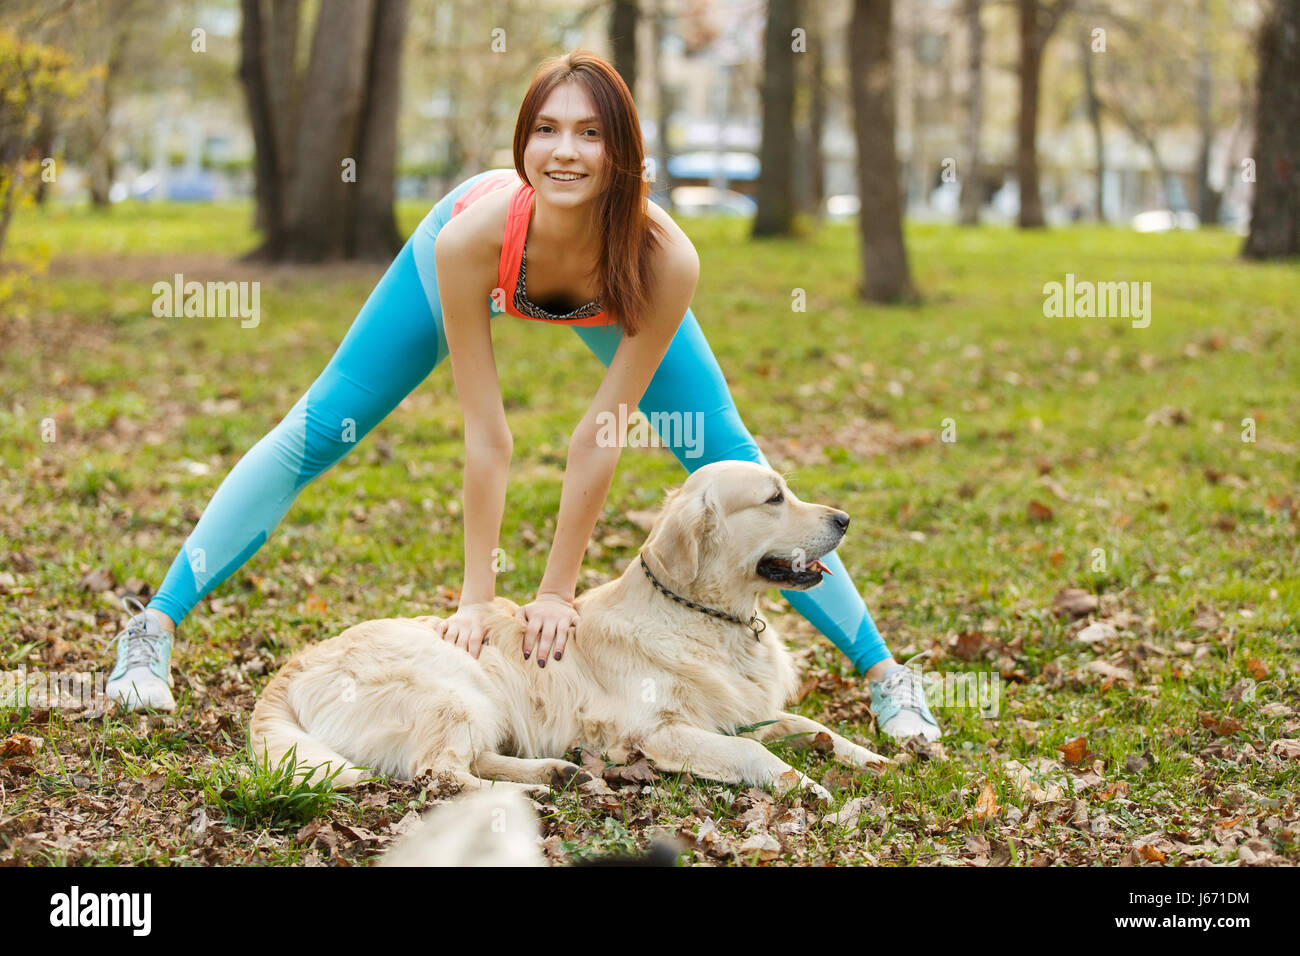 Sportswoman with labrador in park - Stock Image